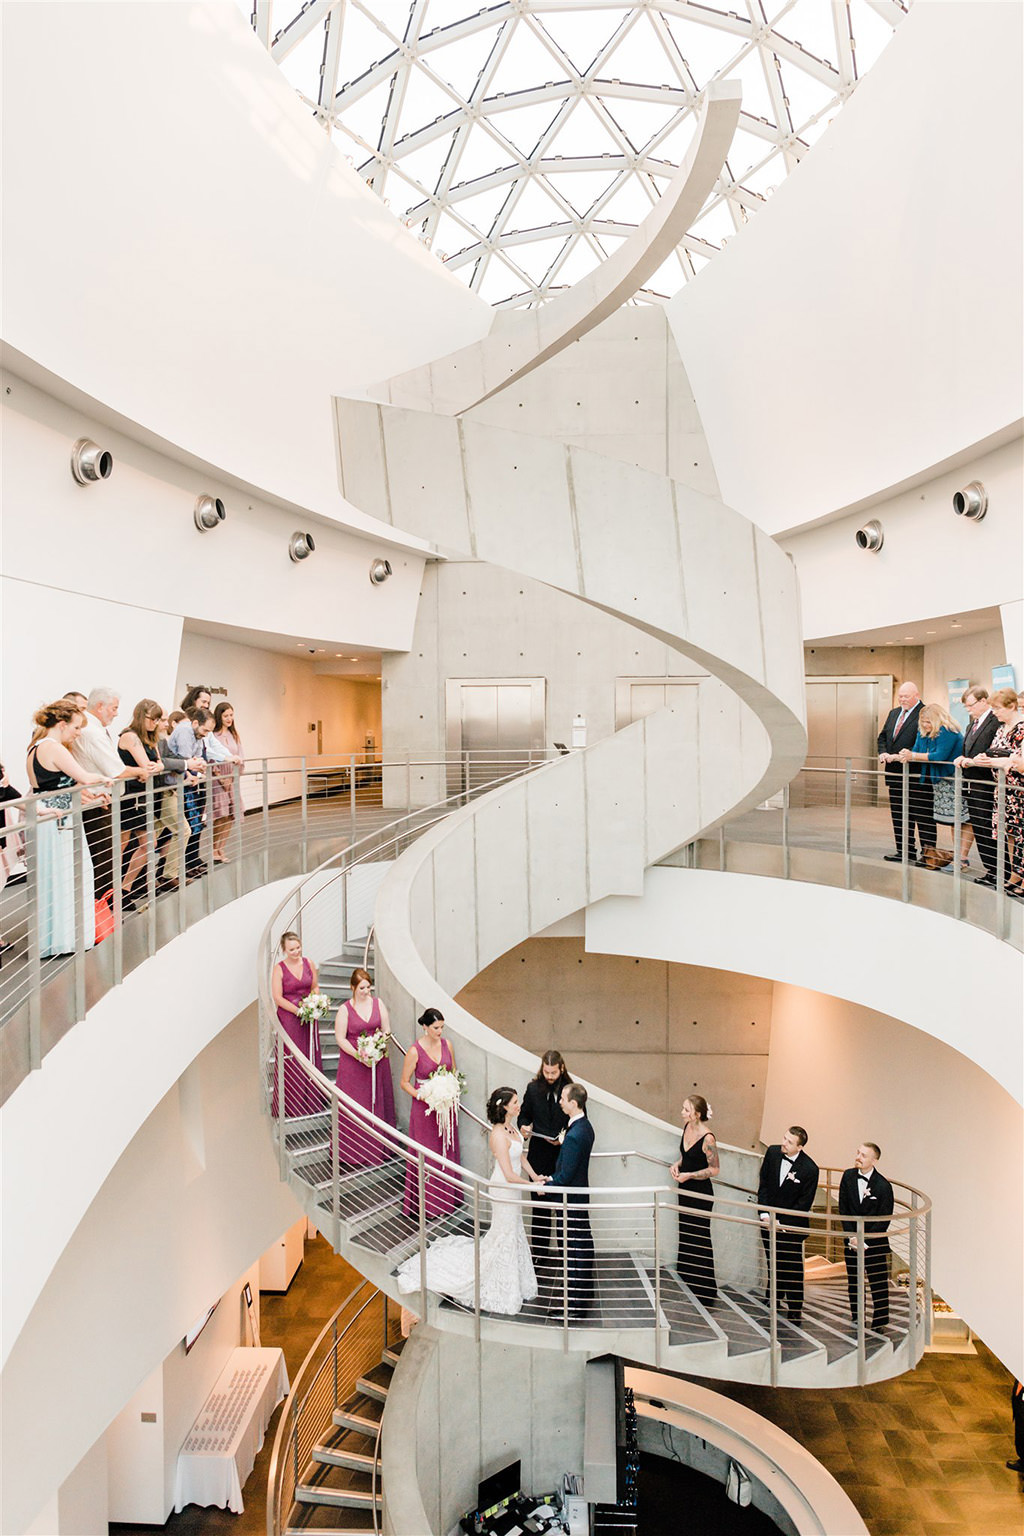 Florida Bride and Groom Exchanging Wedding Ceremony Vows on White Spiral Staircase at Unique St. Petersburg Salvador Dali Museum Venue